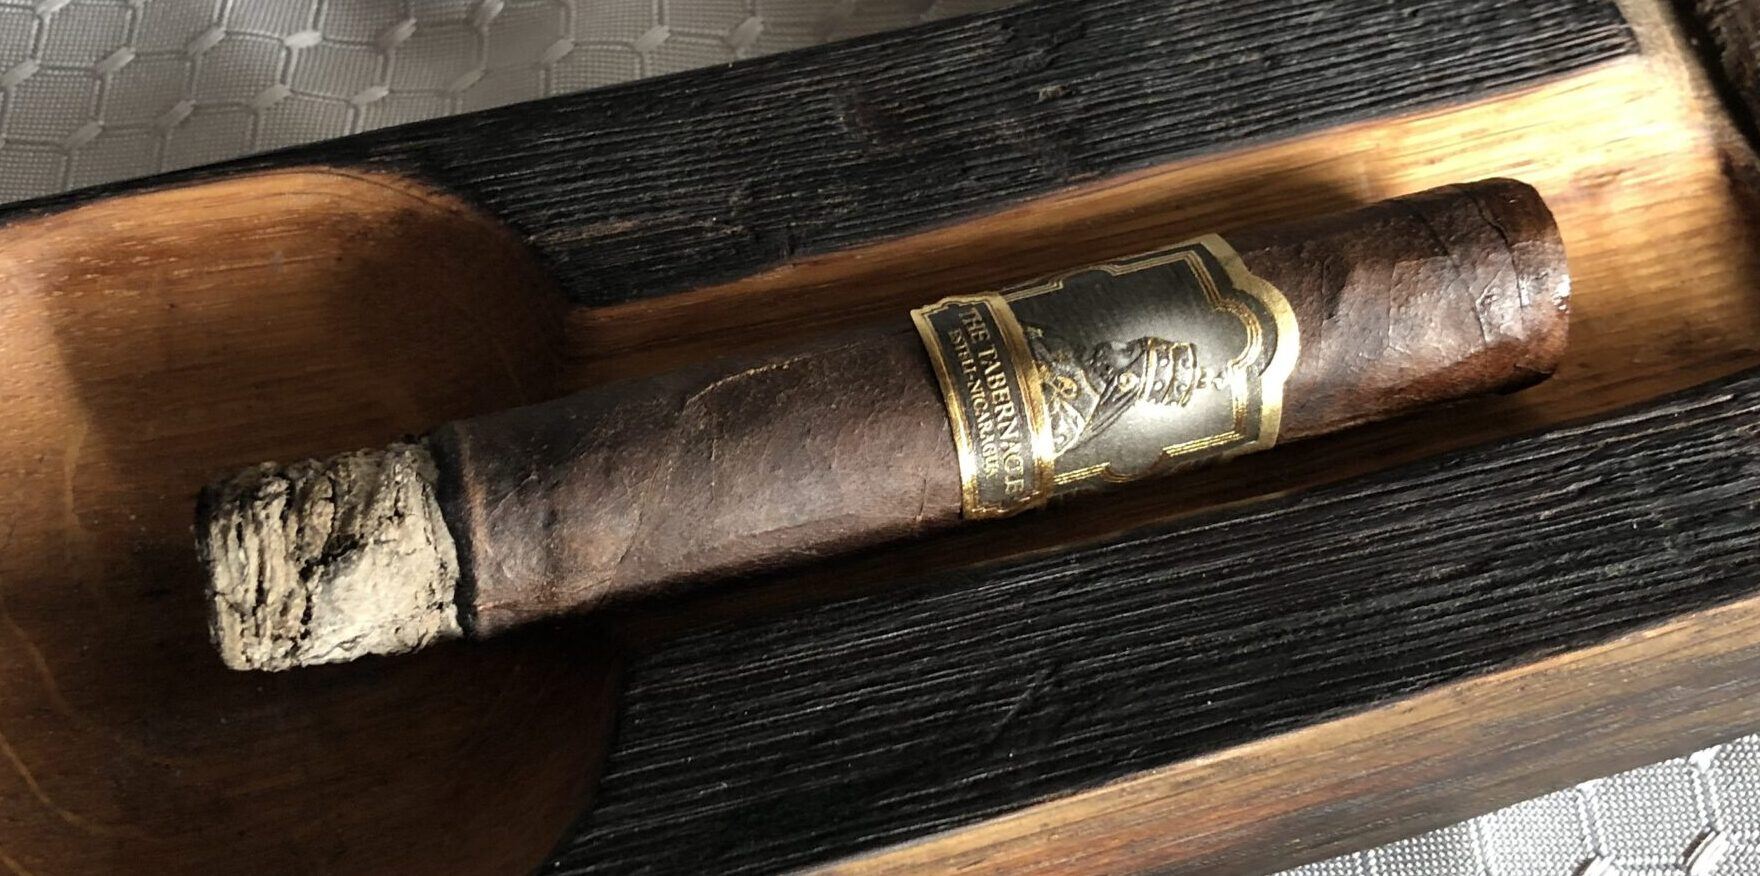 You are currently viewing Foundation Cigars The Tabernacle Robusto Cigar Review